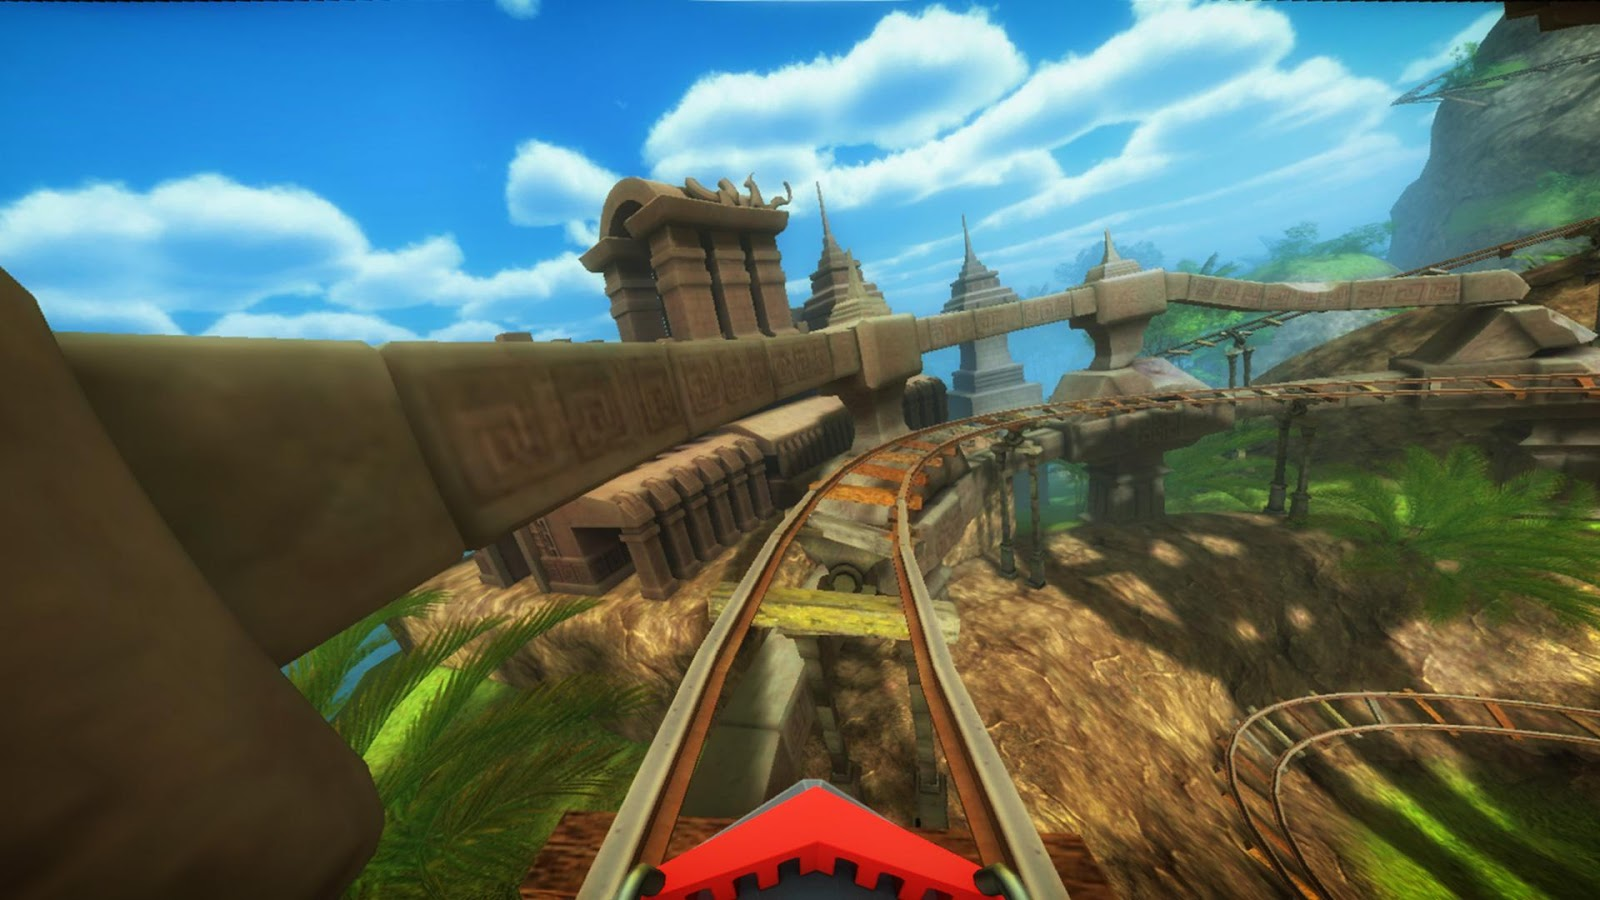 Roller Coaster VR attraction 1 97 APK + OBB (Data File